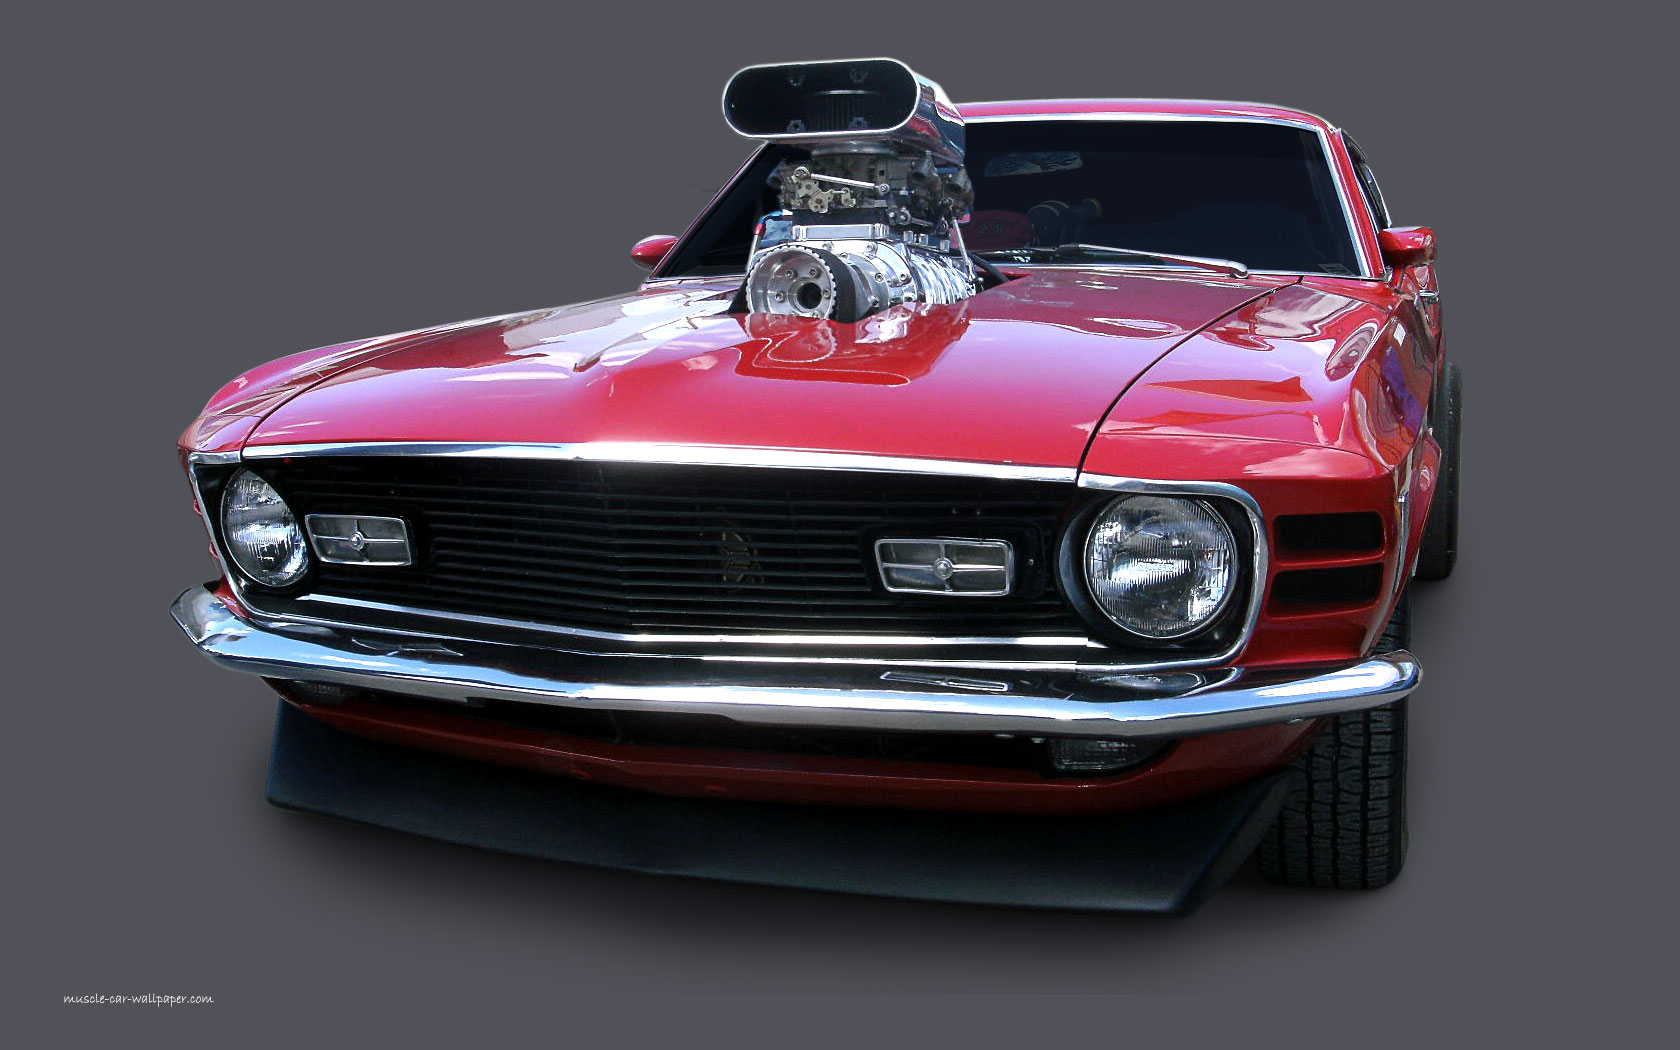 1970 Mustang Mach1 Wallpaper   Red Fastback 1680x1050 08 1680x1050